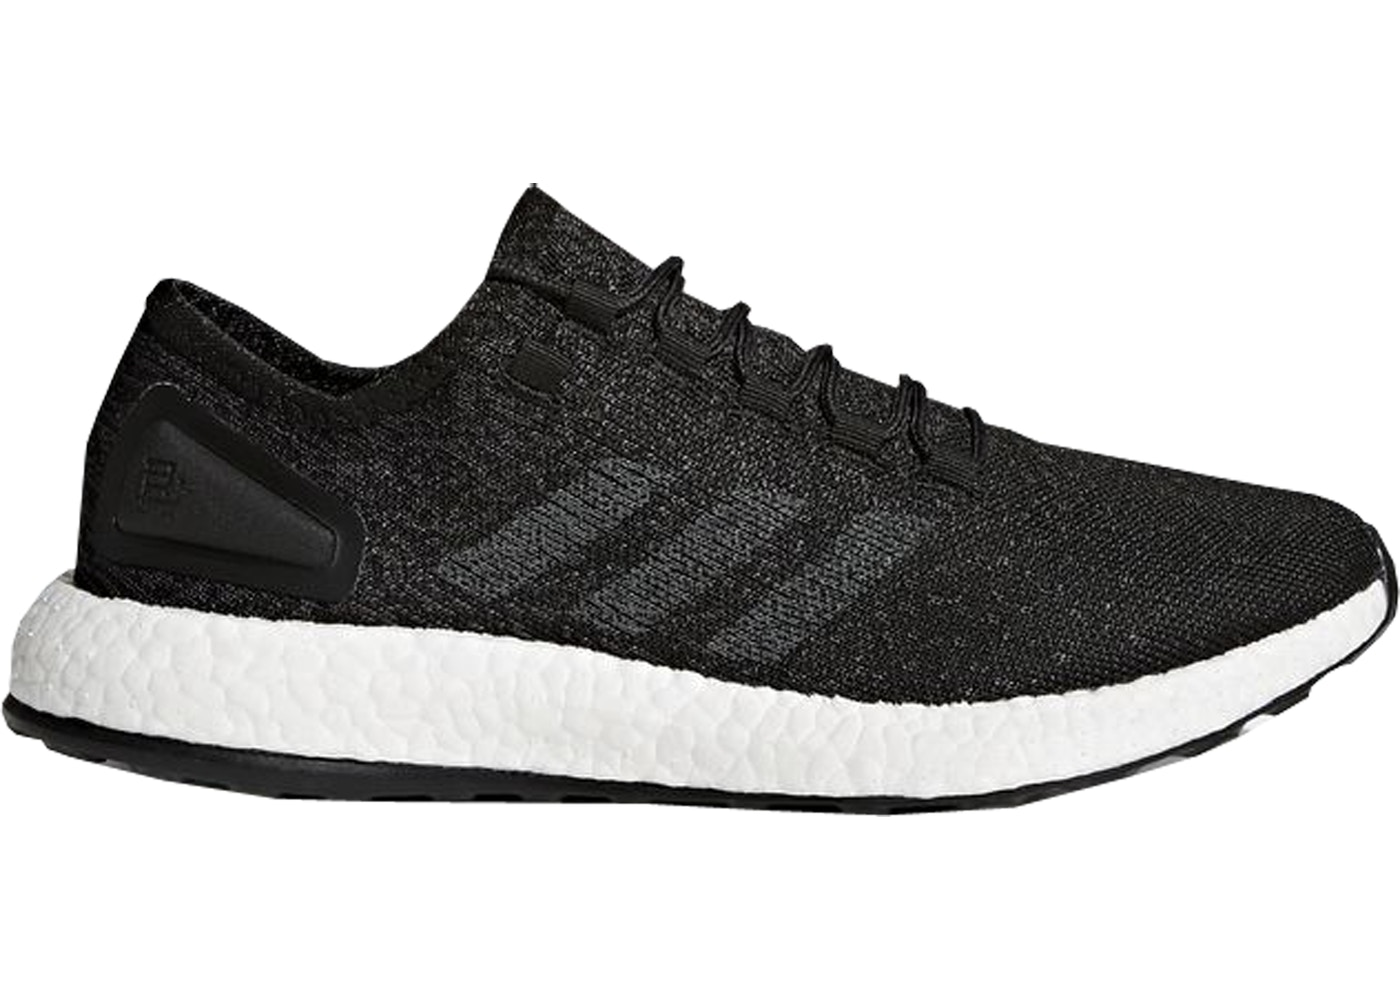 detailed look d4587 3ff19 adidas Pureboost Reigning Champ Core Black